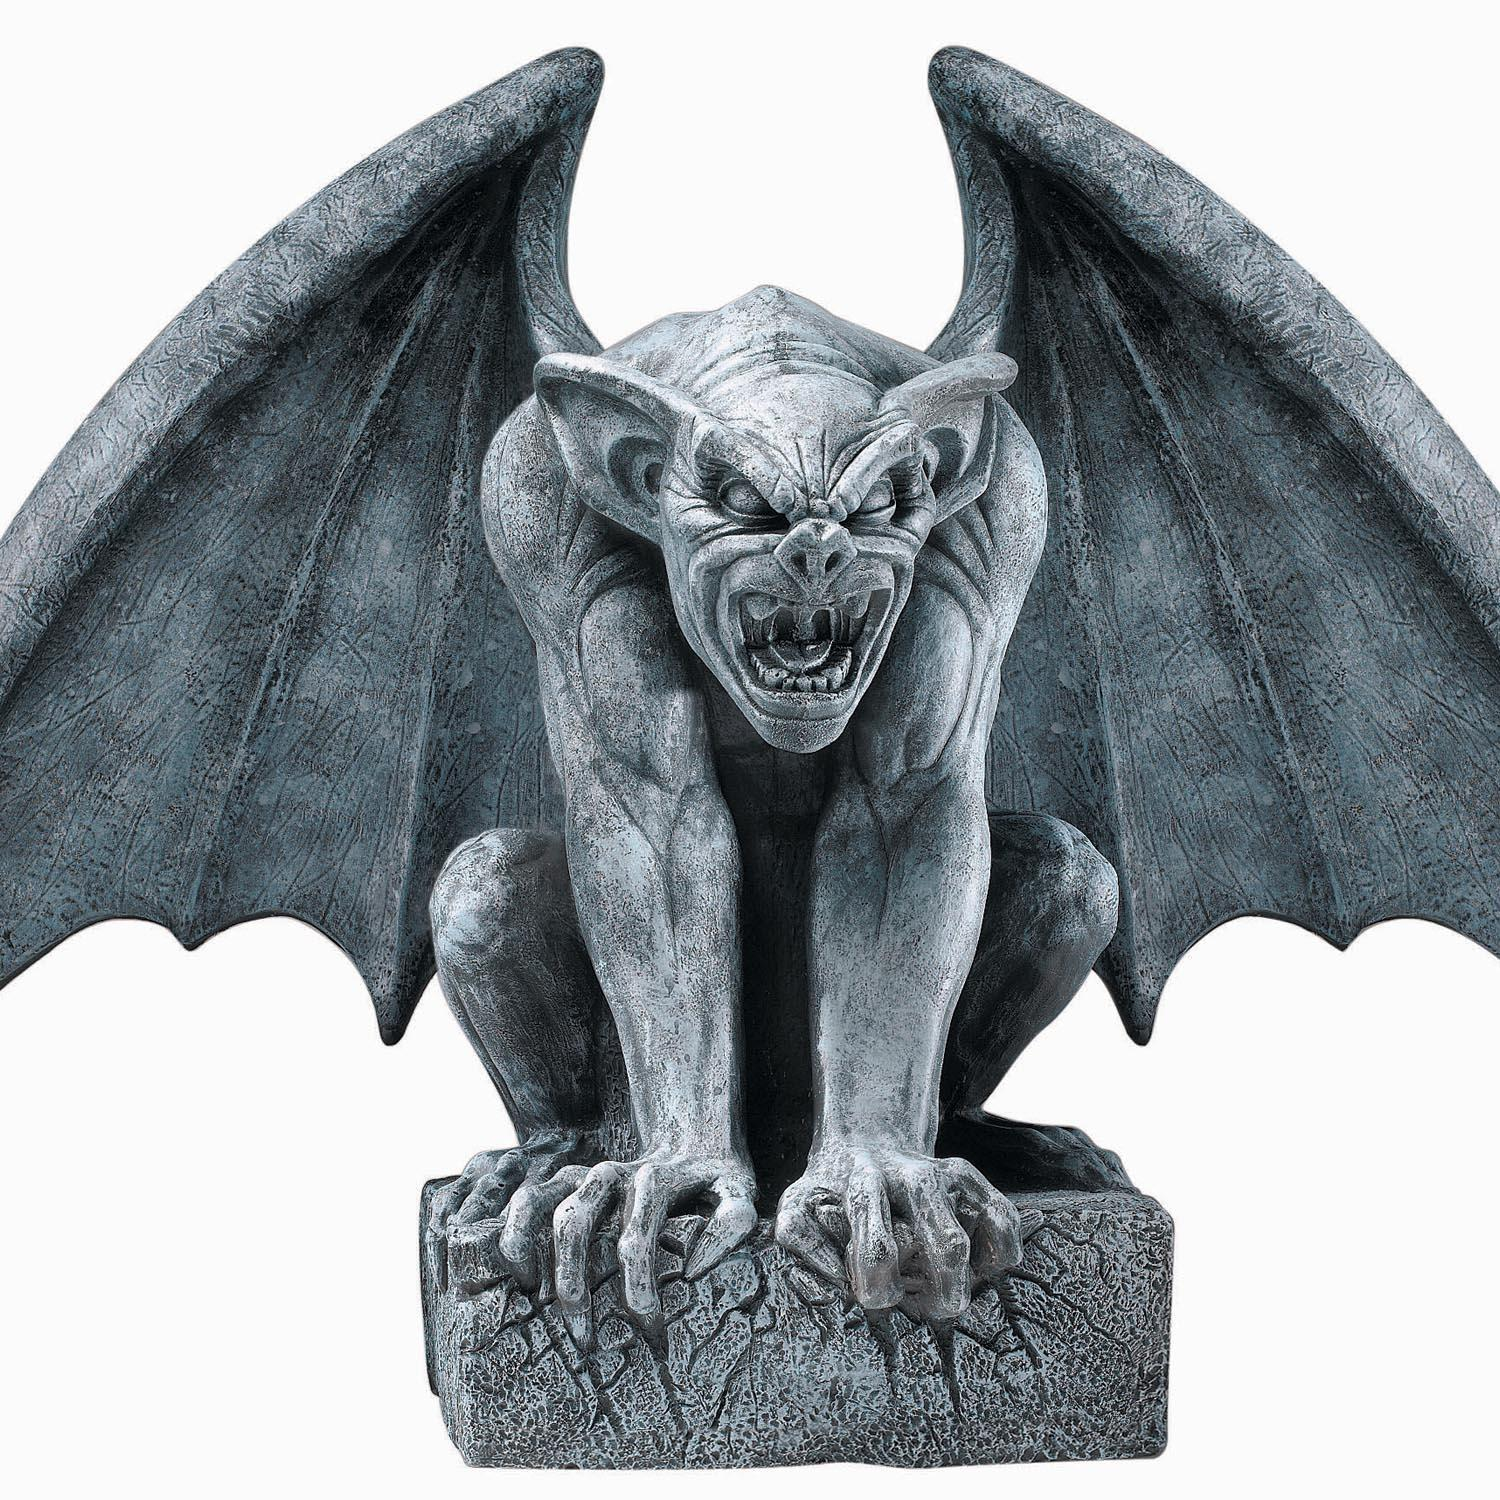 Gargoyles Love Santa Claus Too The Return Of The Modern Philosopher